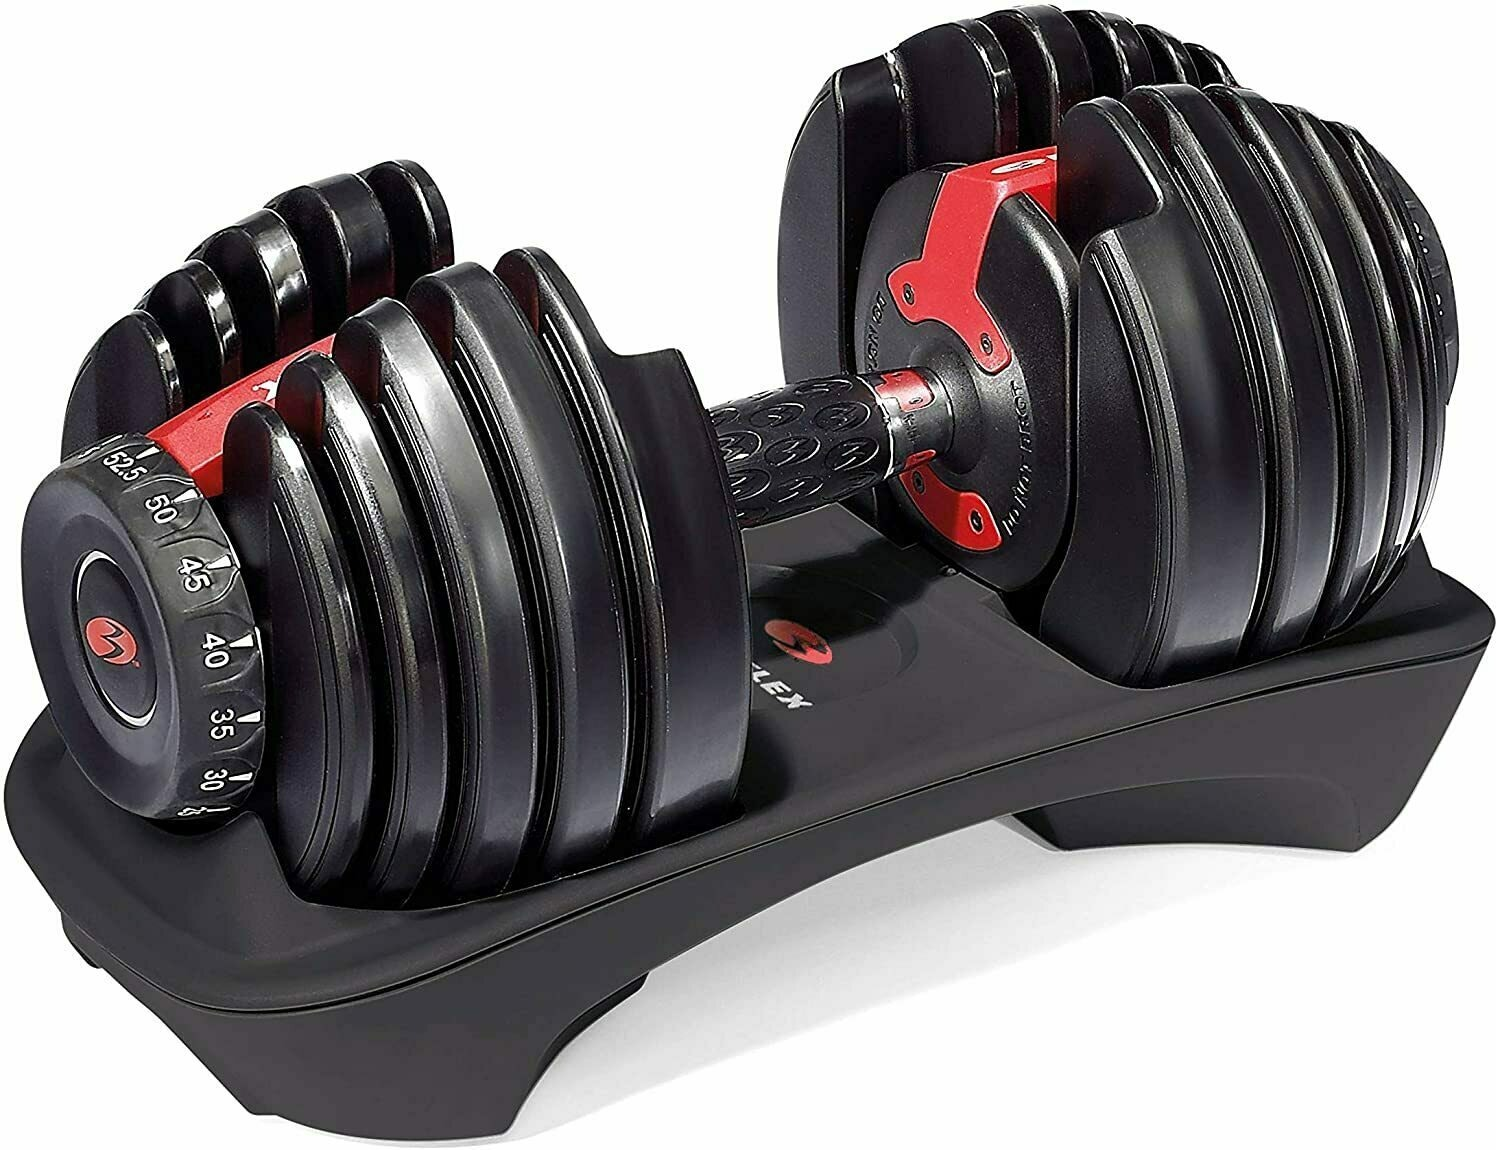 Bowflex SelectTech Adjustable Dumbbell